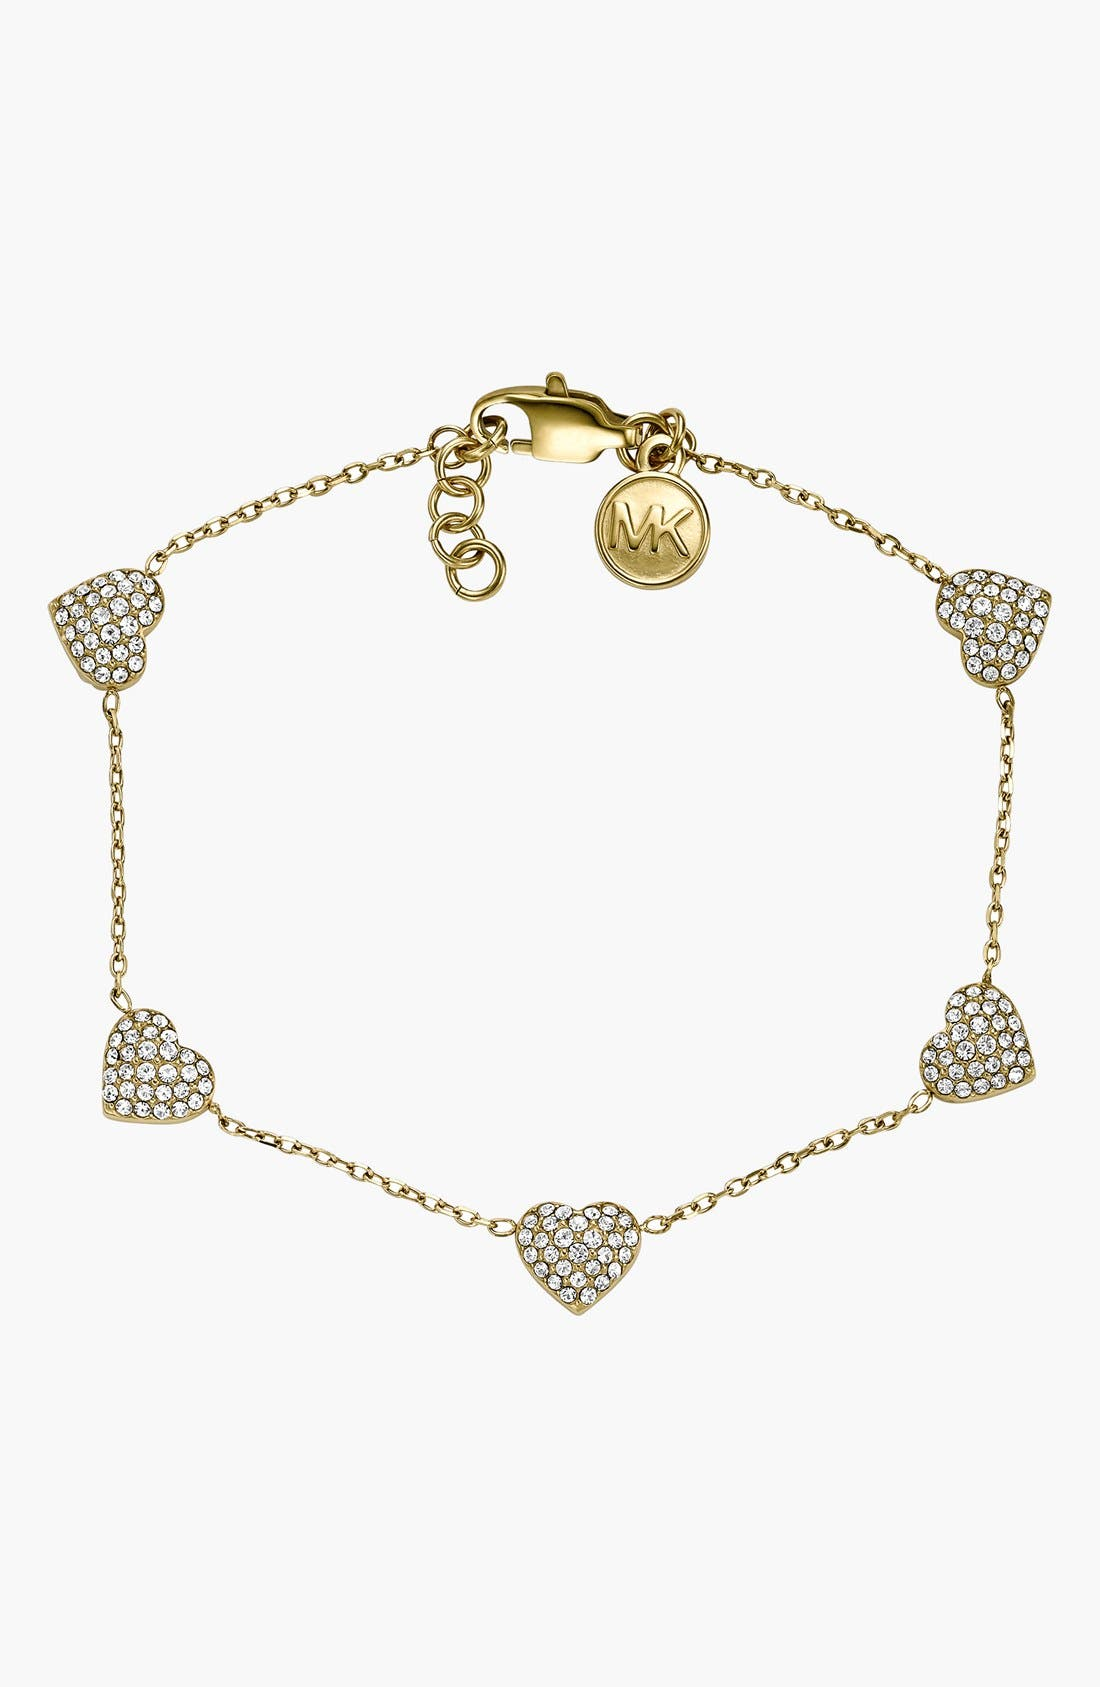 Alternate Image 1 Selected - Michael Kors 'Motif Brilliance' Pavé Heart Station Bracelet